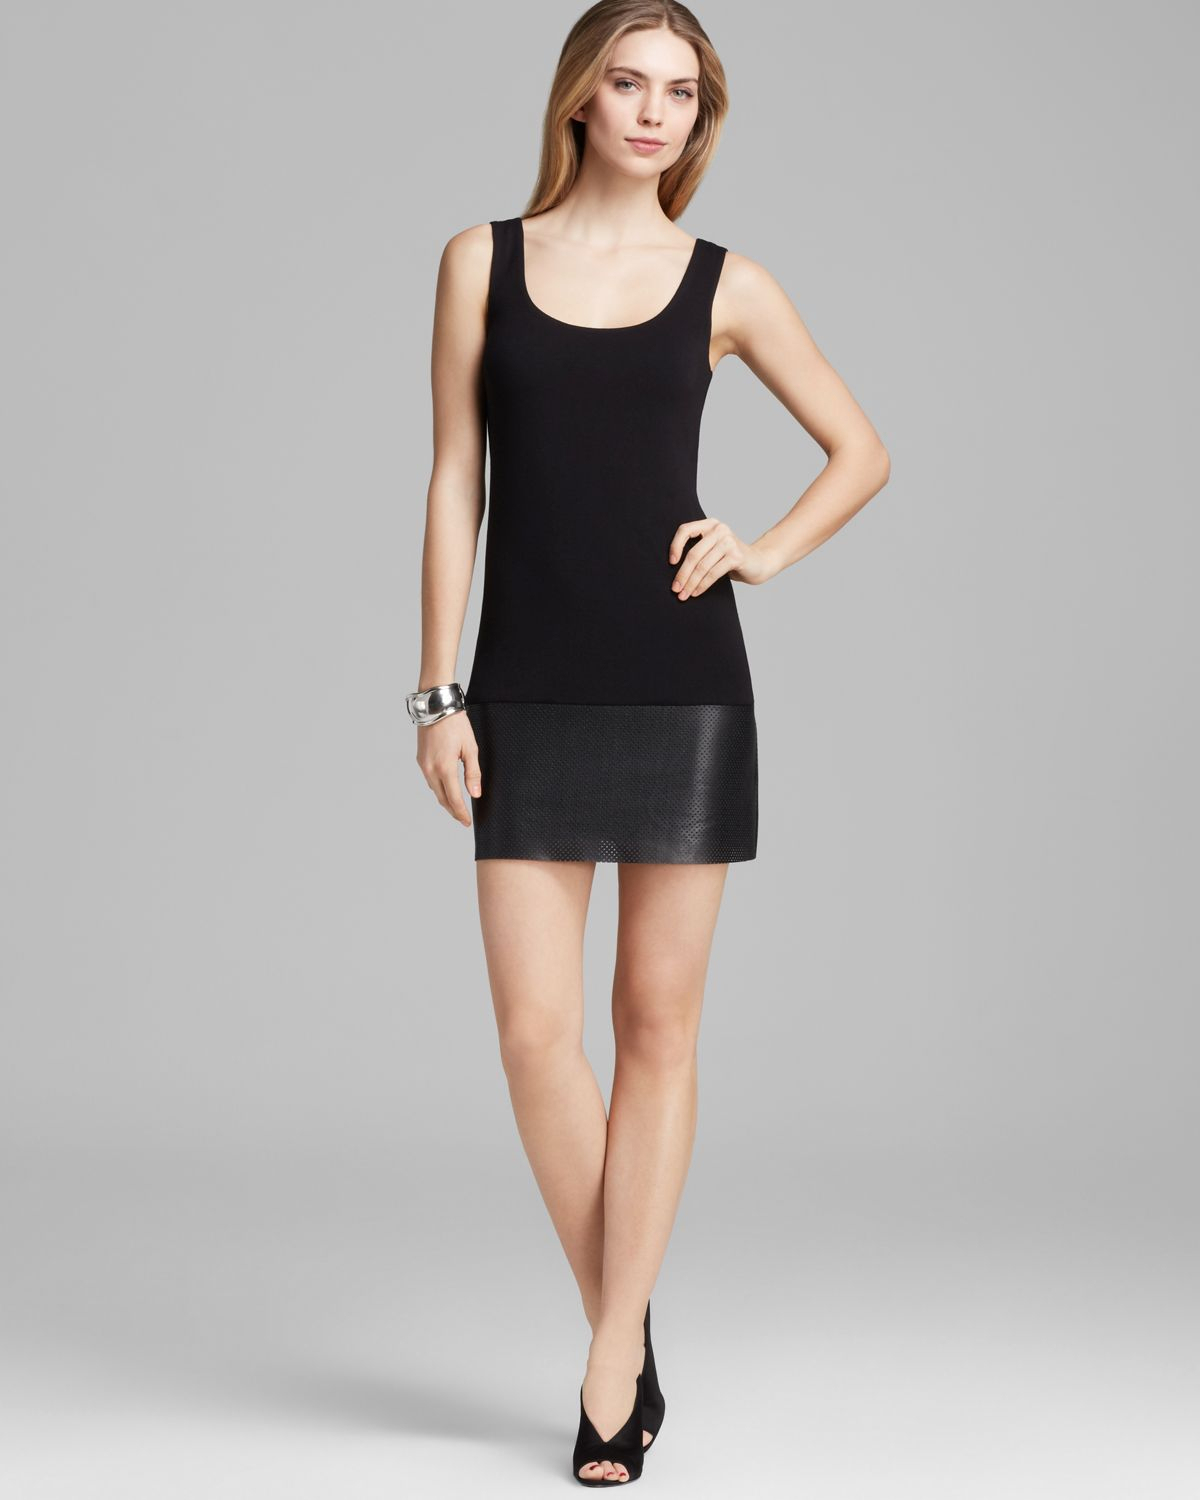 Bailey 44 Dress - Scoop Neck Tank With Perforated Faux Leather ...